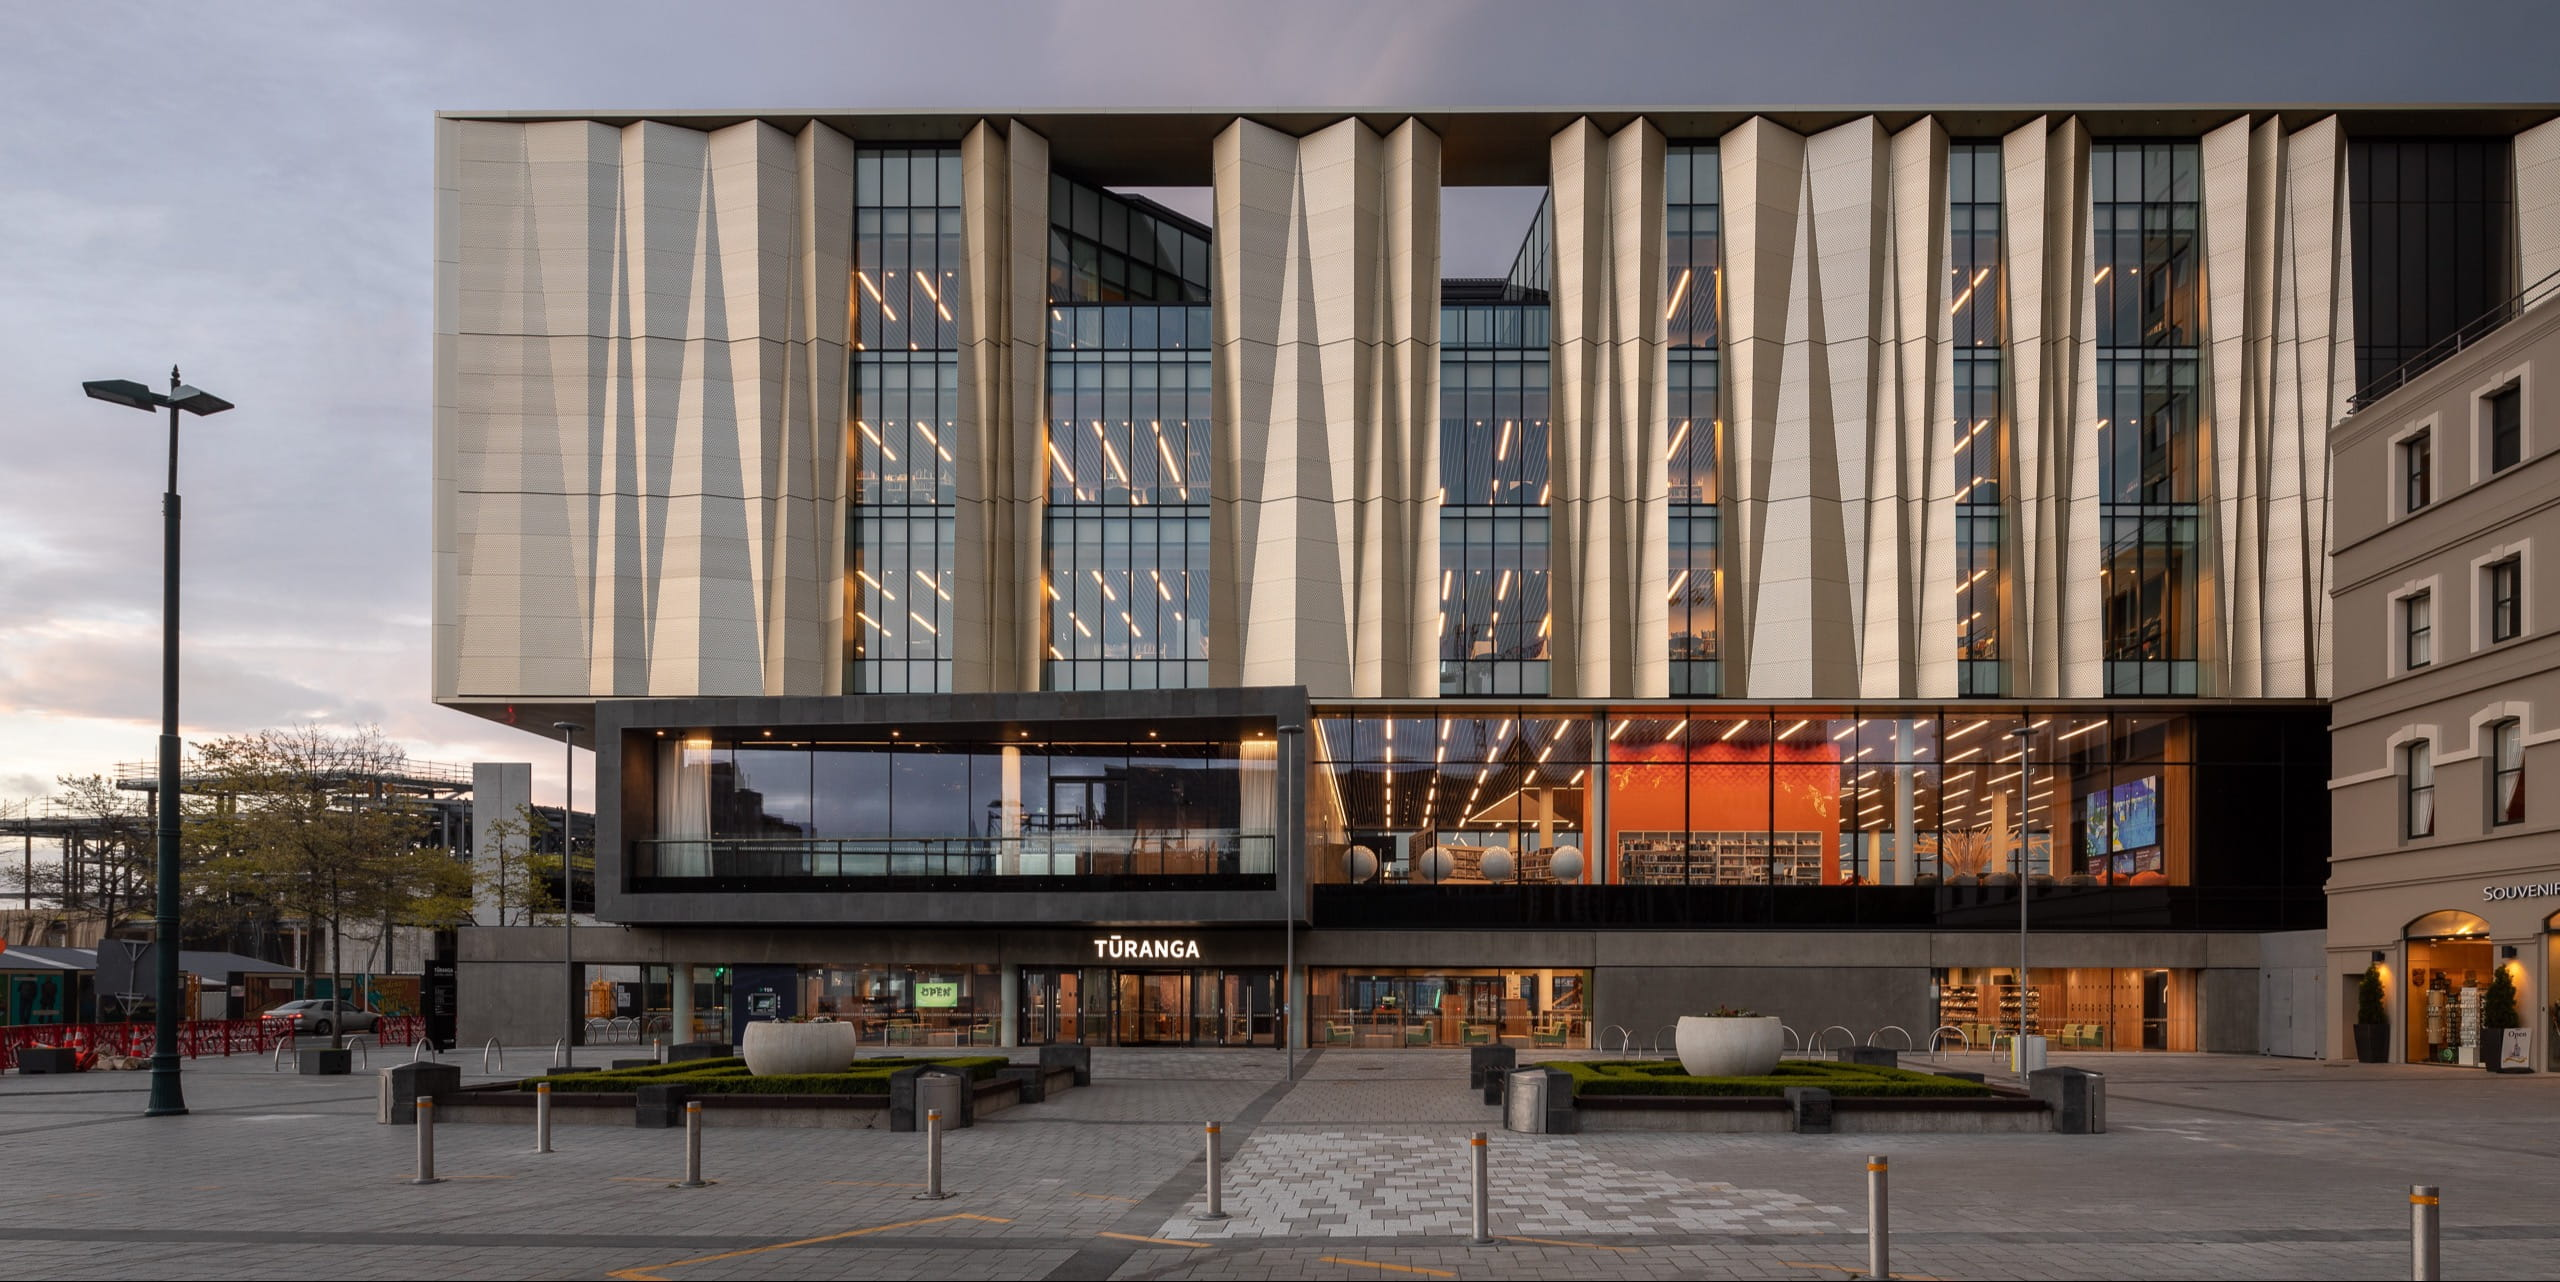 SHL Architects designs new library in Christchurch as a symbol of hope, unity and rebirth